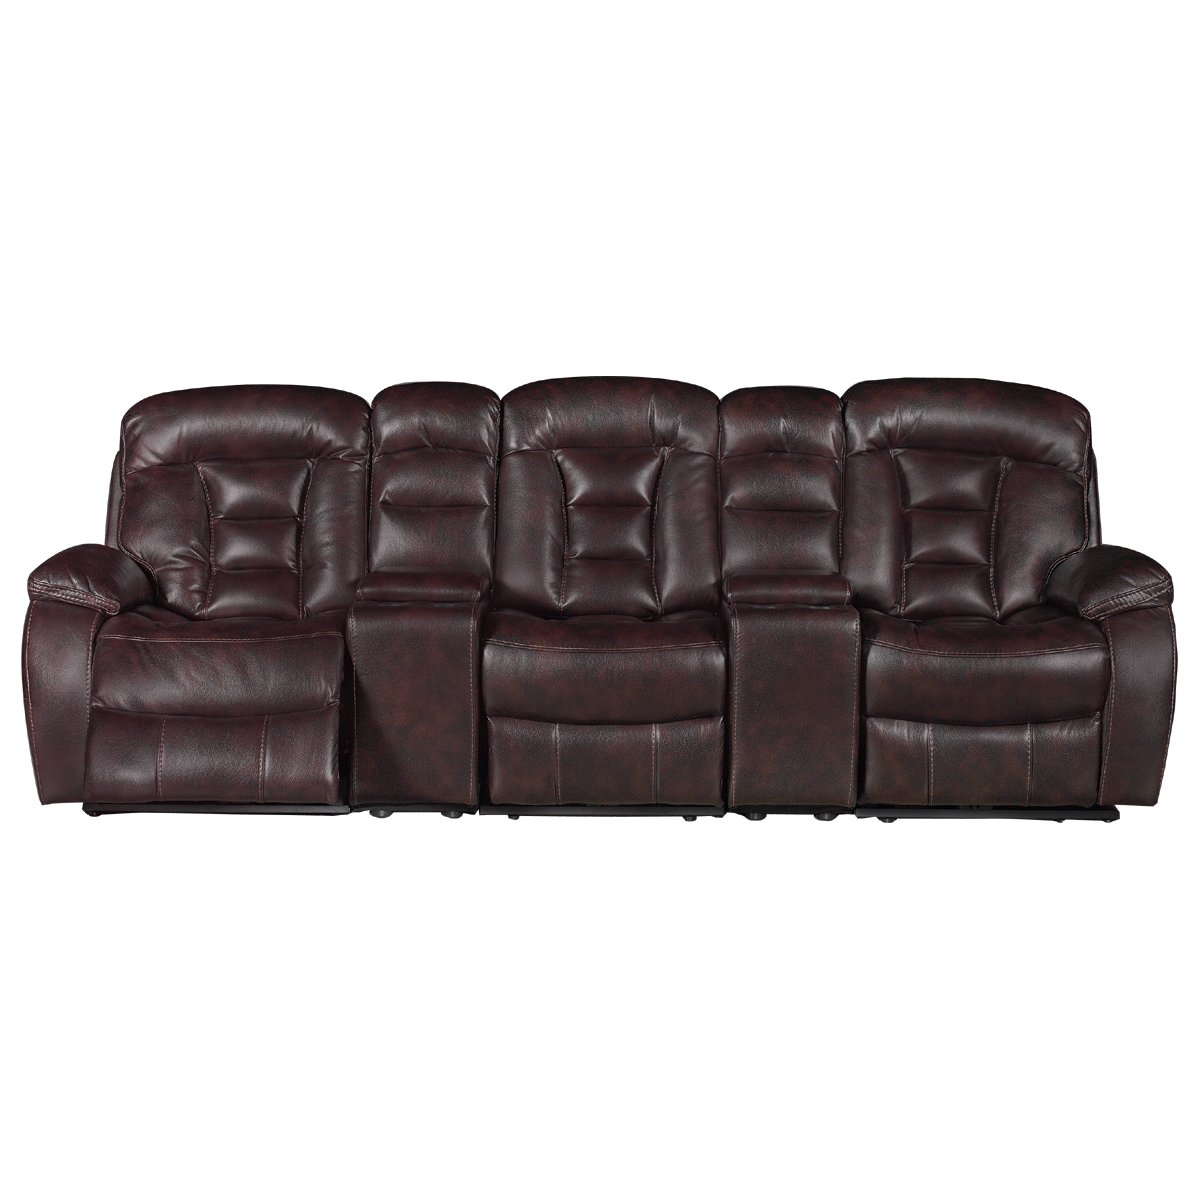 Daniel brown upholstered 5 piece power reclining theater for 5 piece reclining sectional sofa